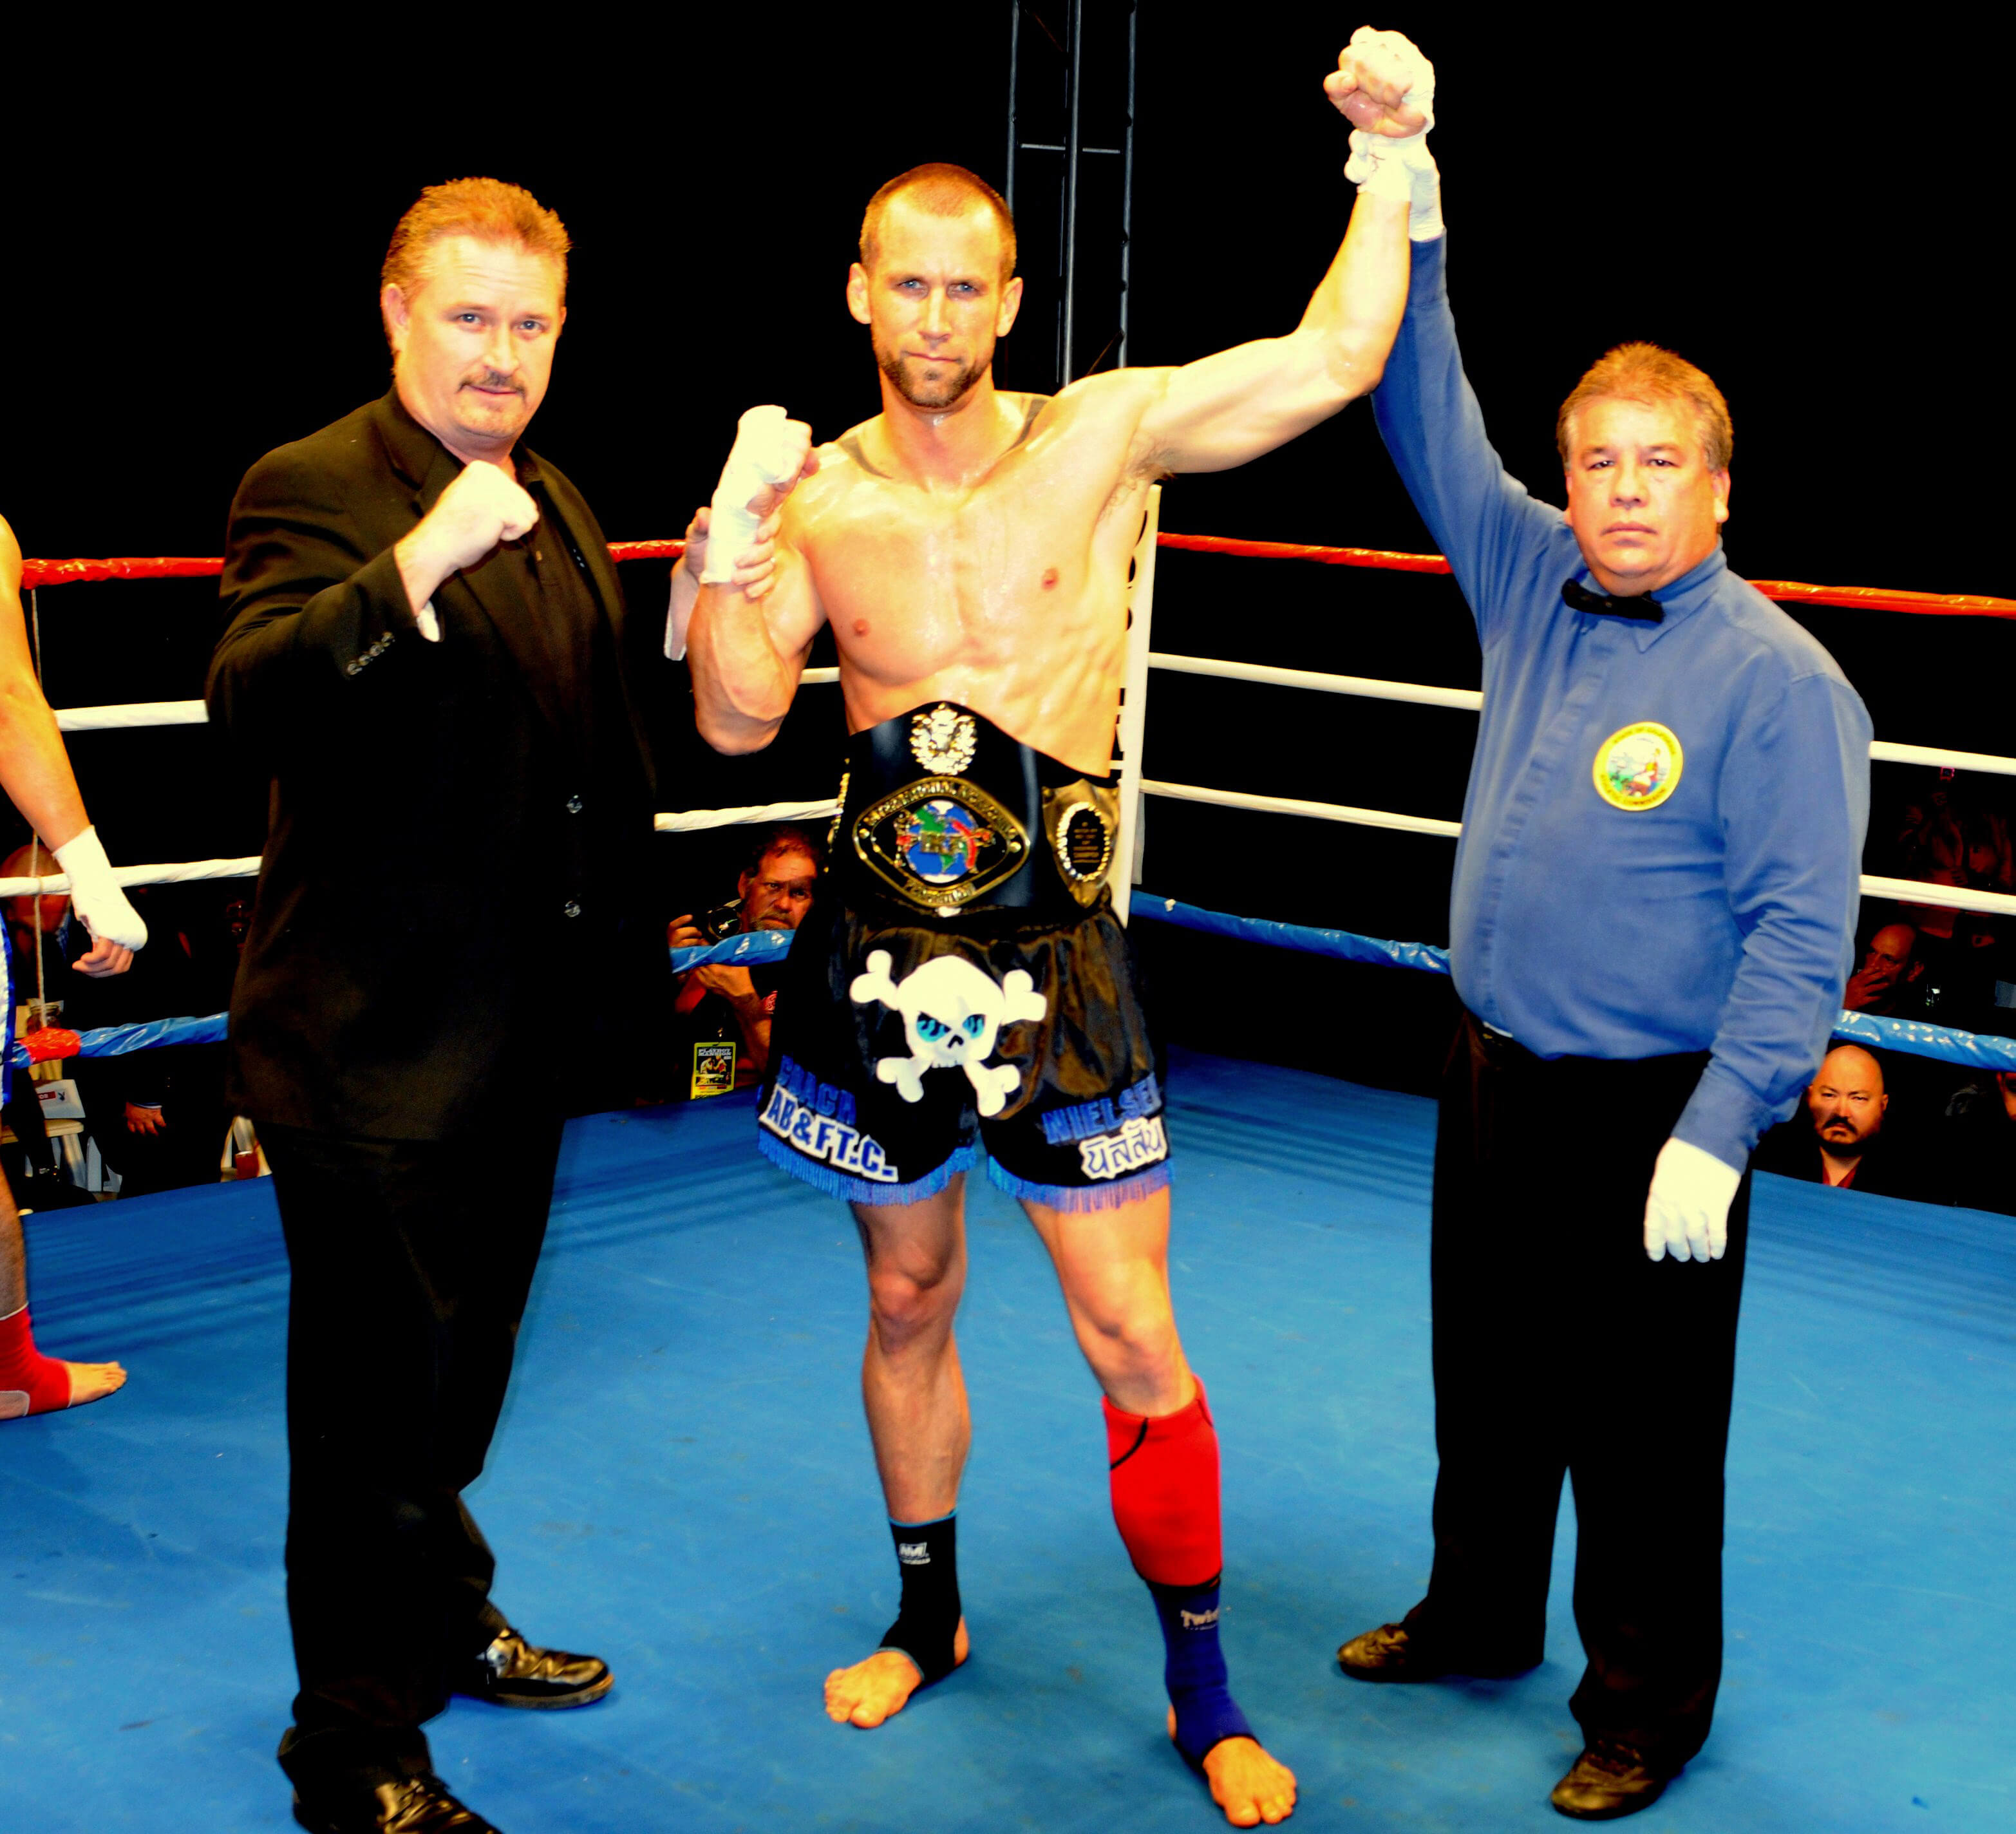 Coach Dave Nielsen wins IKF Muay Thai Championship at The Playboy Mansion